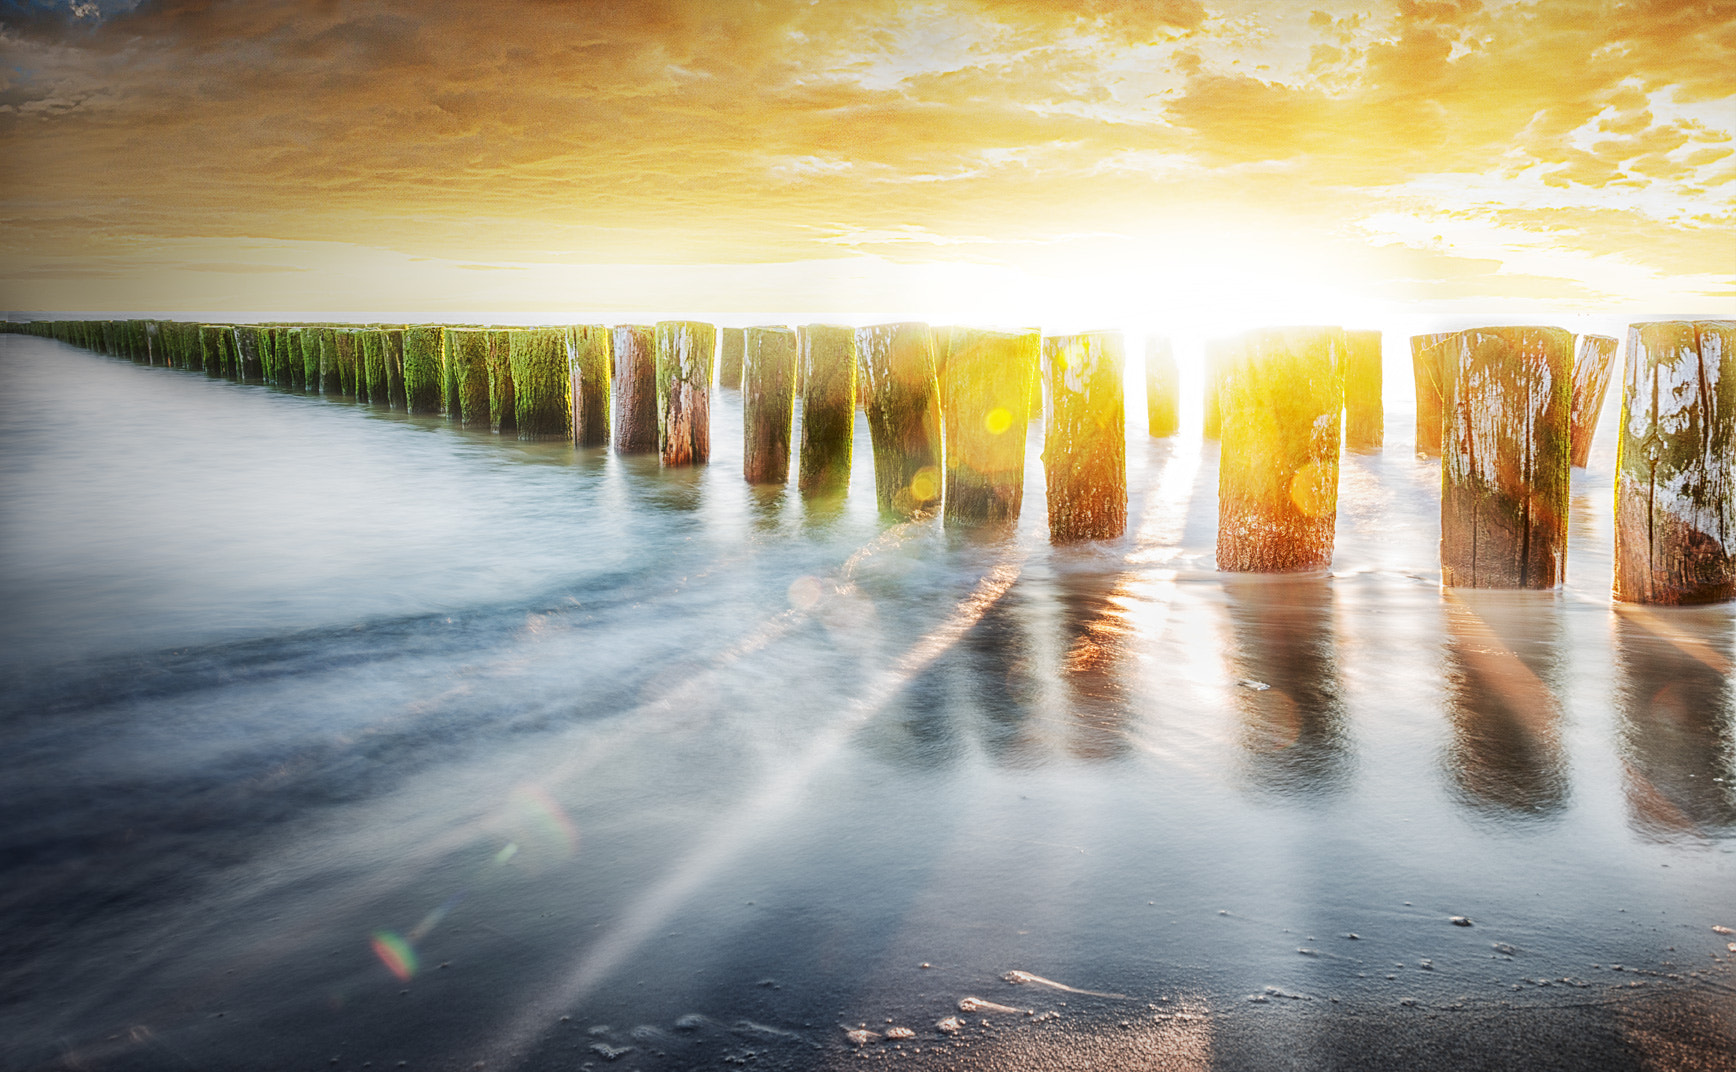 Photograph Into Sea by Armin Barth on 500px